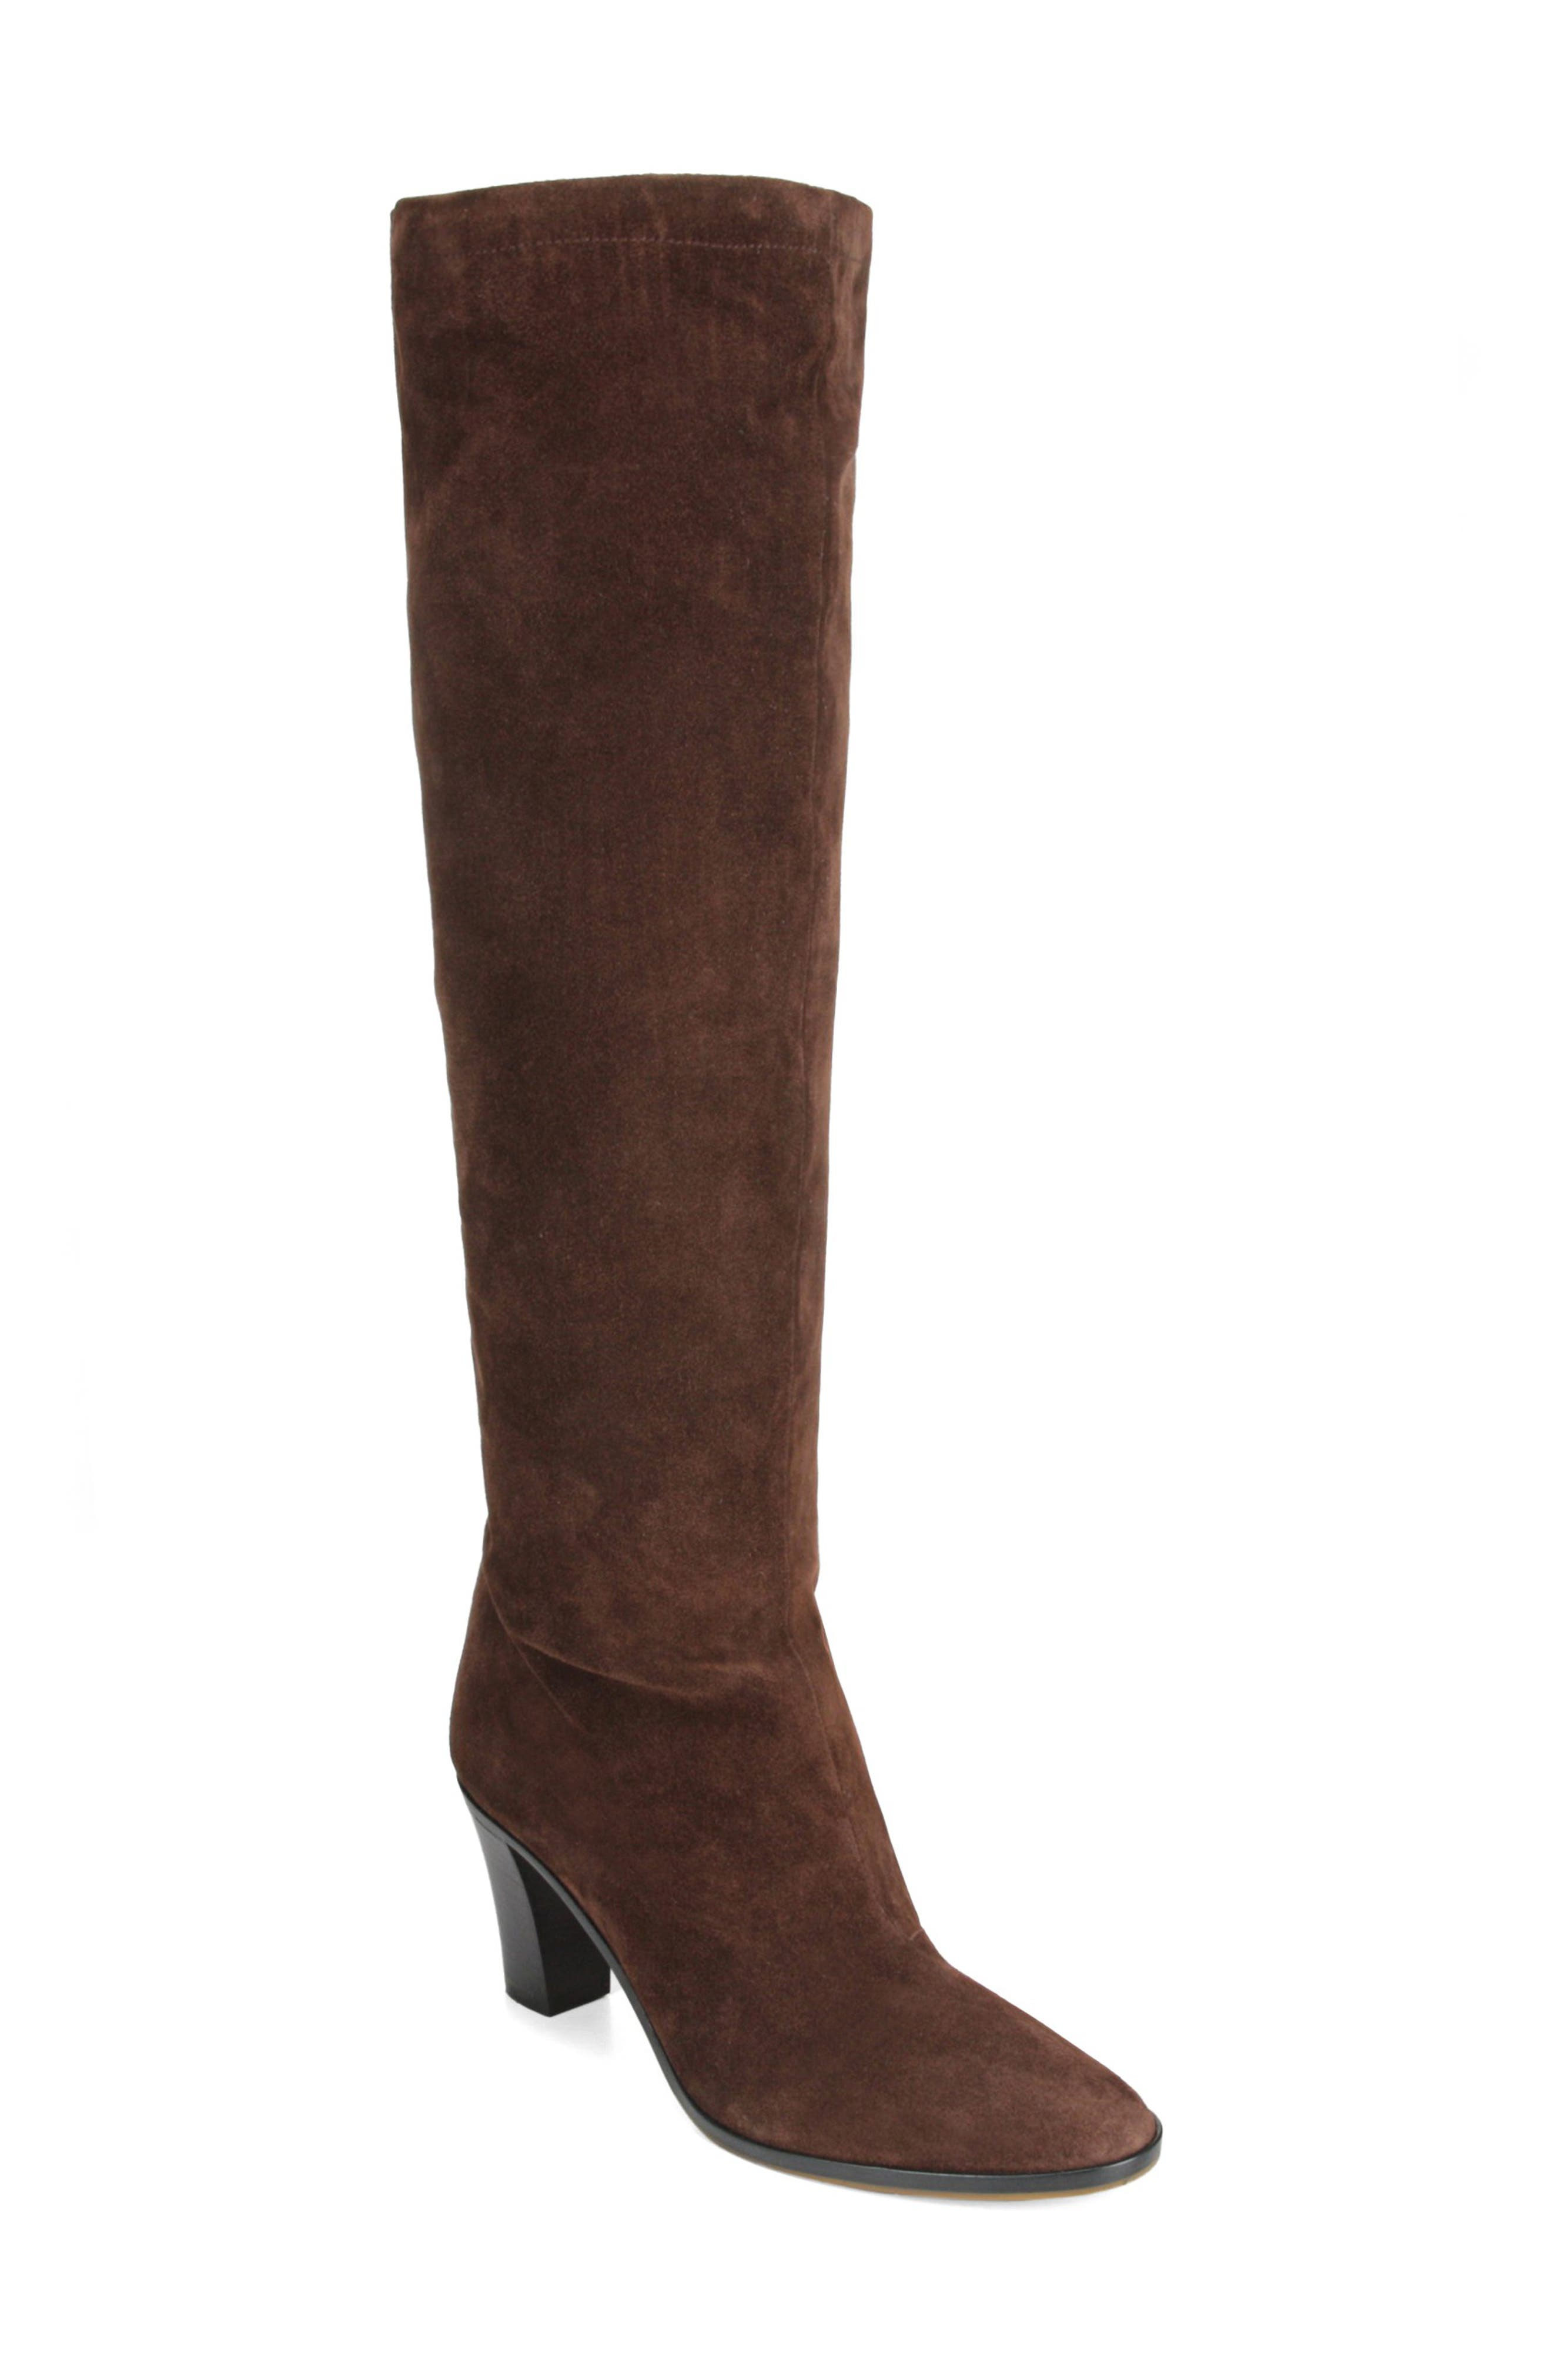 Casper Knee High Pull-On Boot,                             Main thumbnail 1, color,                             COTTO BROWN